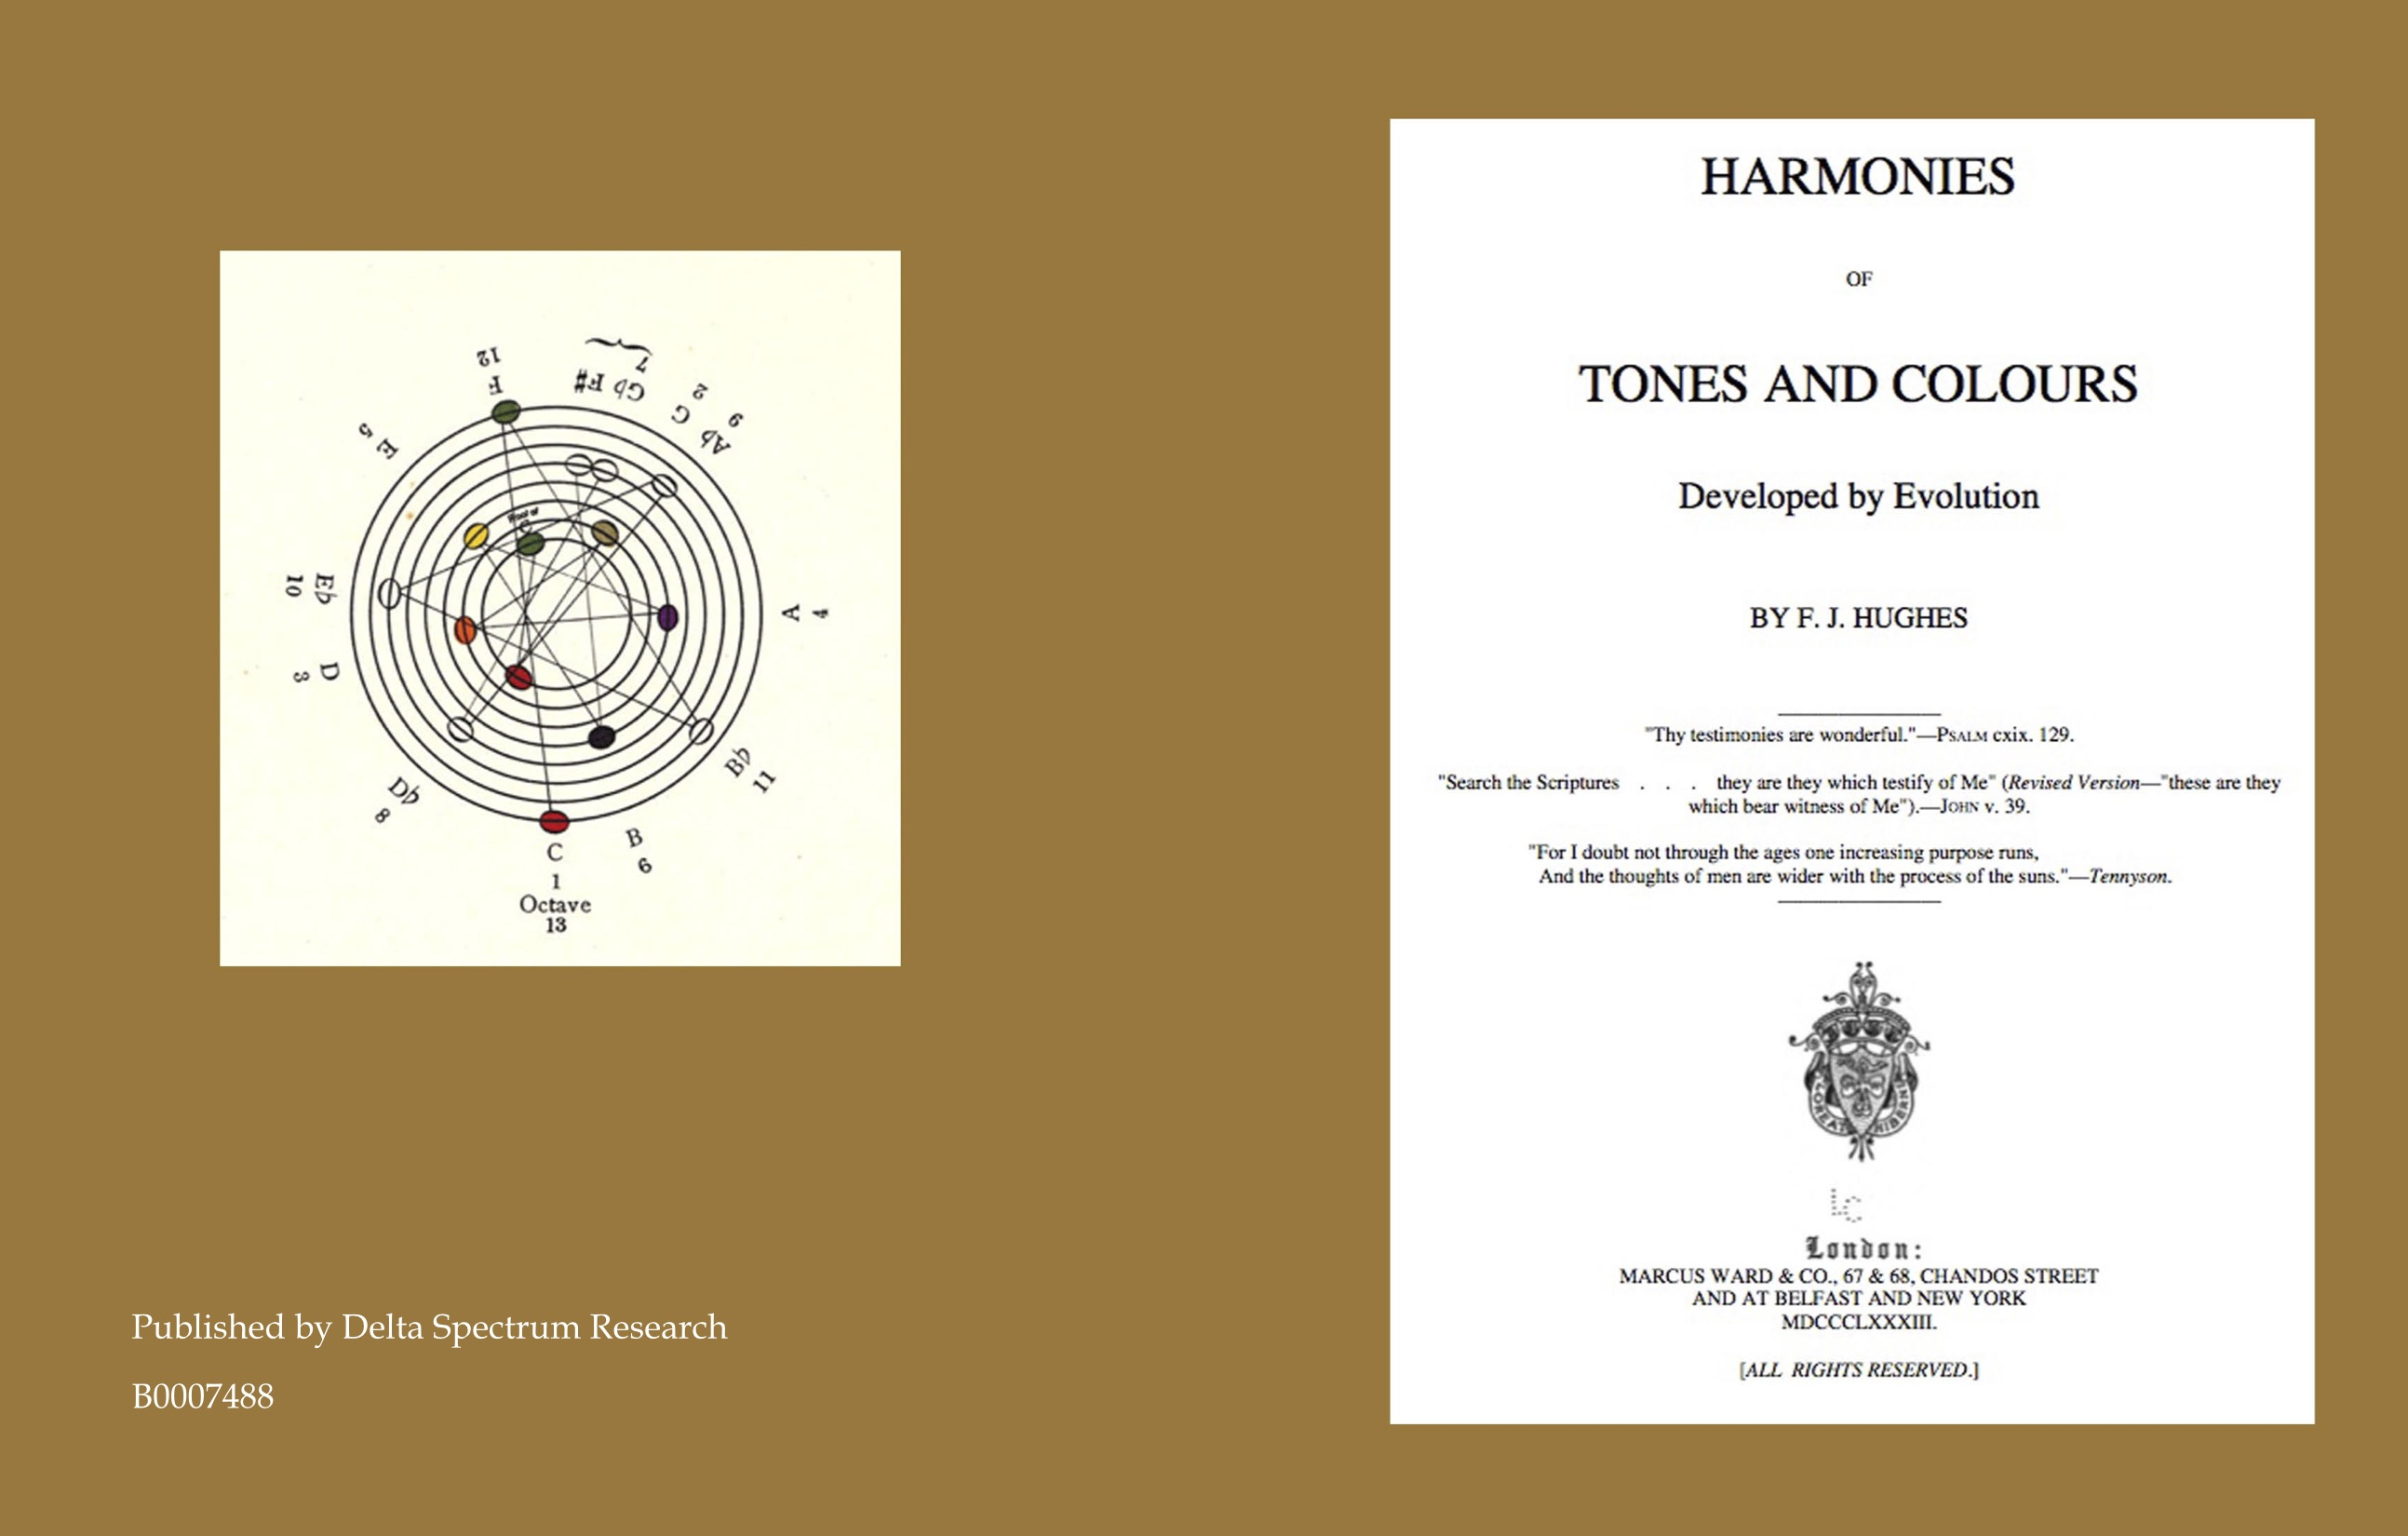 Harmonies of Tones and Colours - Developed by Evolution